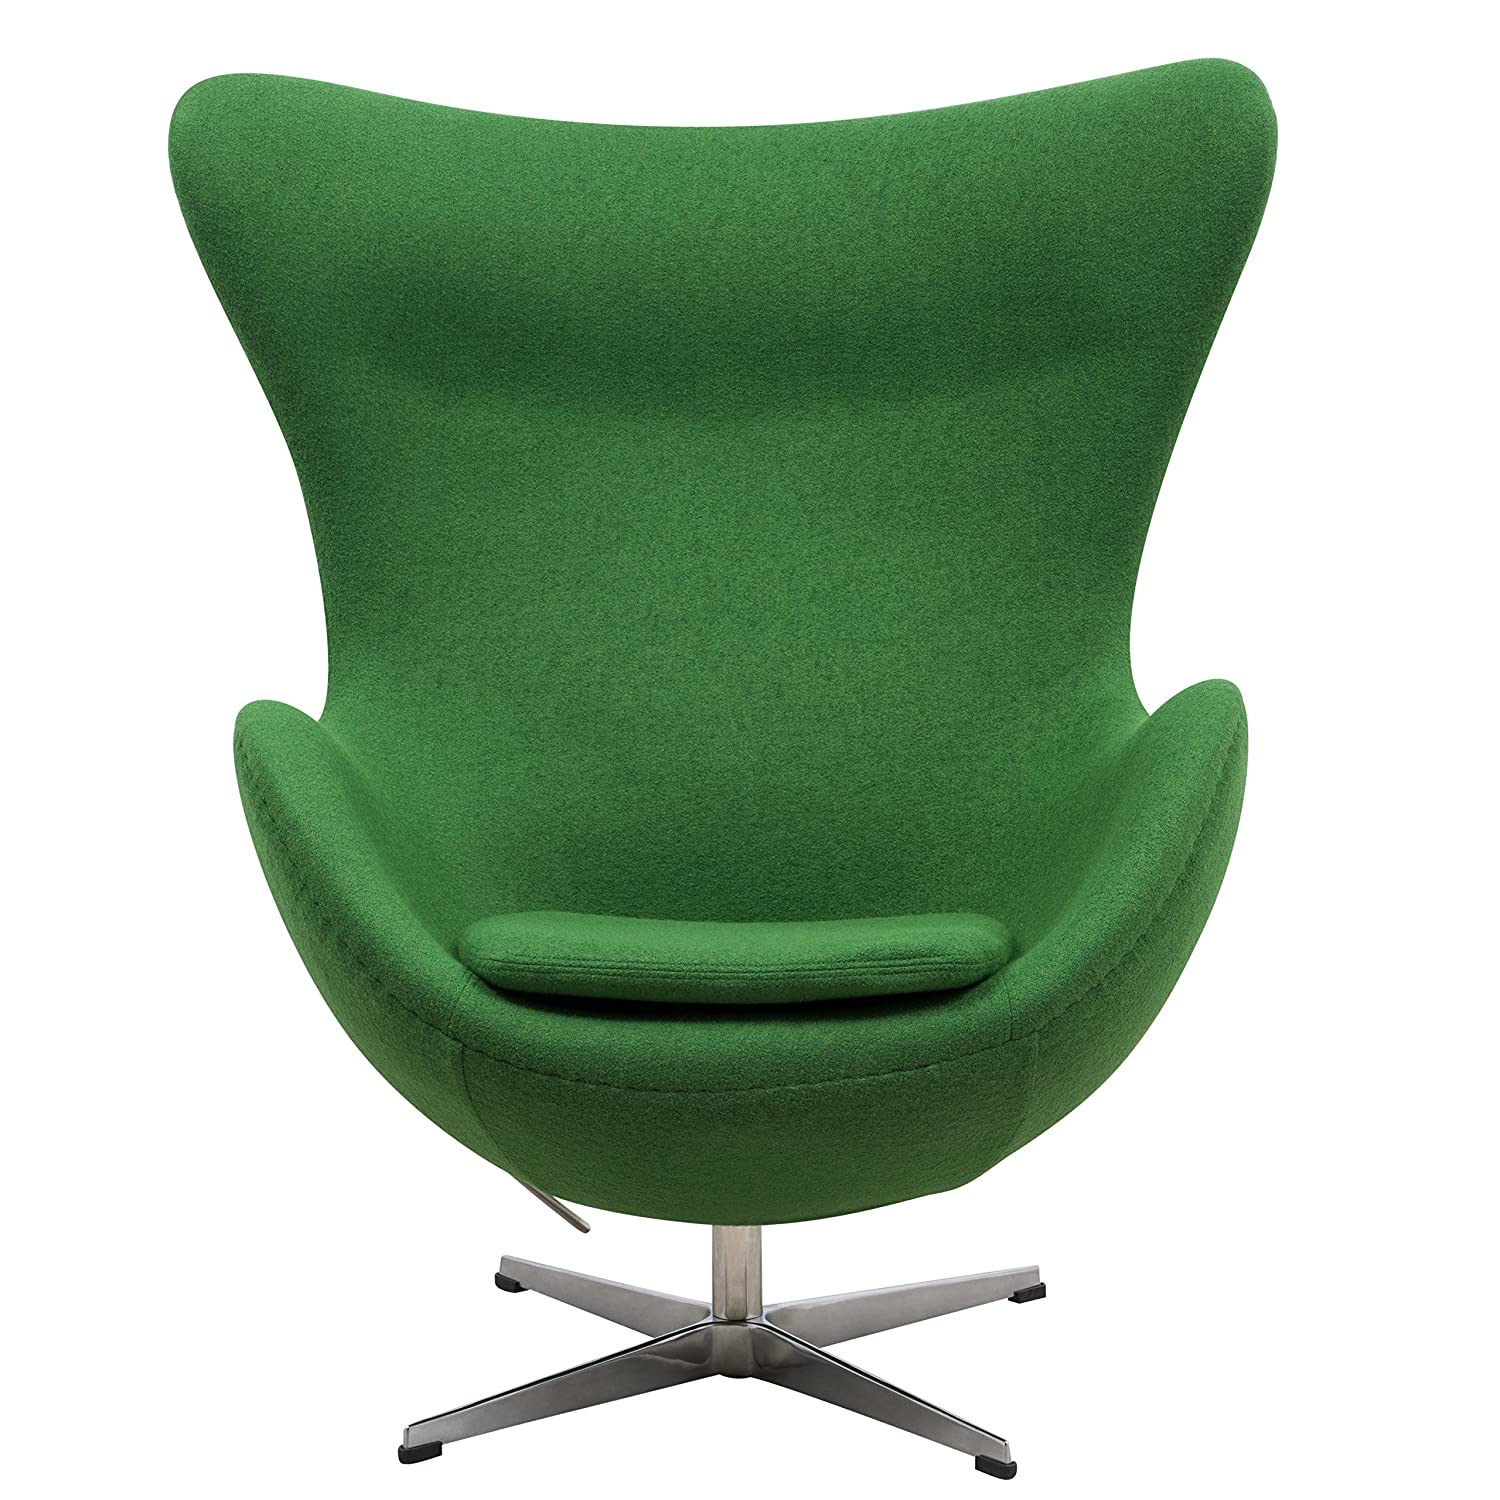 LeisureMod Modena Mid-Century Fabric Accent Egg Chair With Tilt-Lock Mechanism In Green Wool